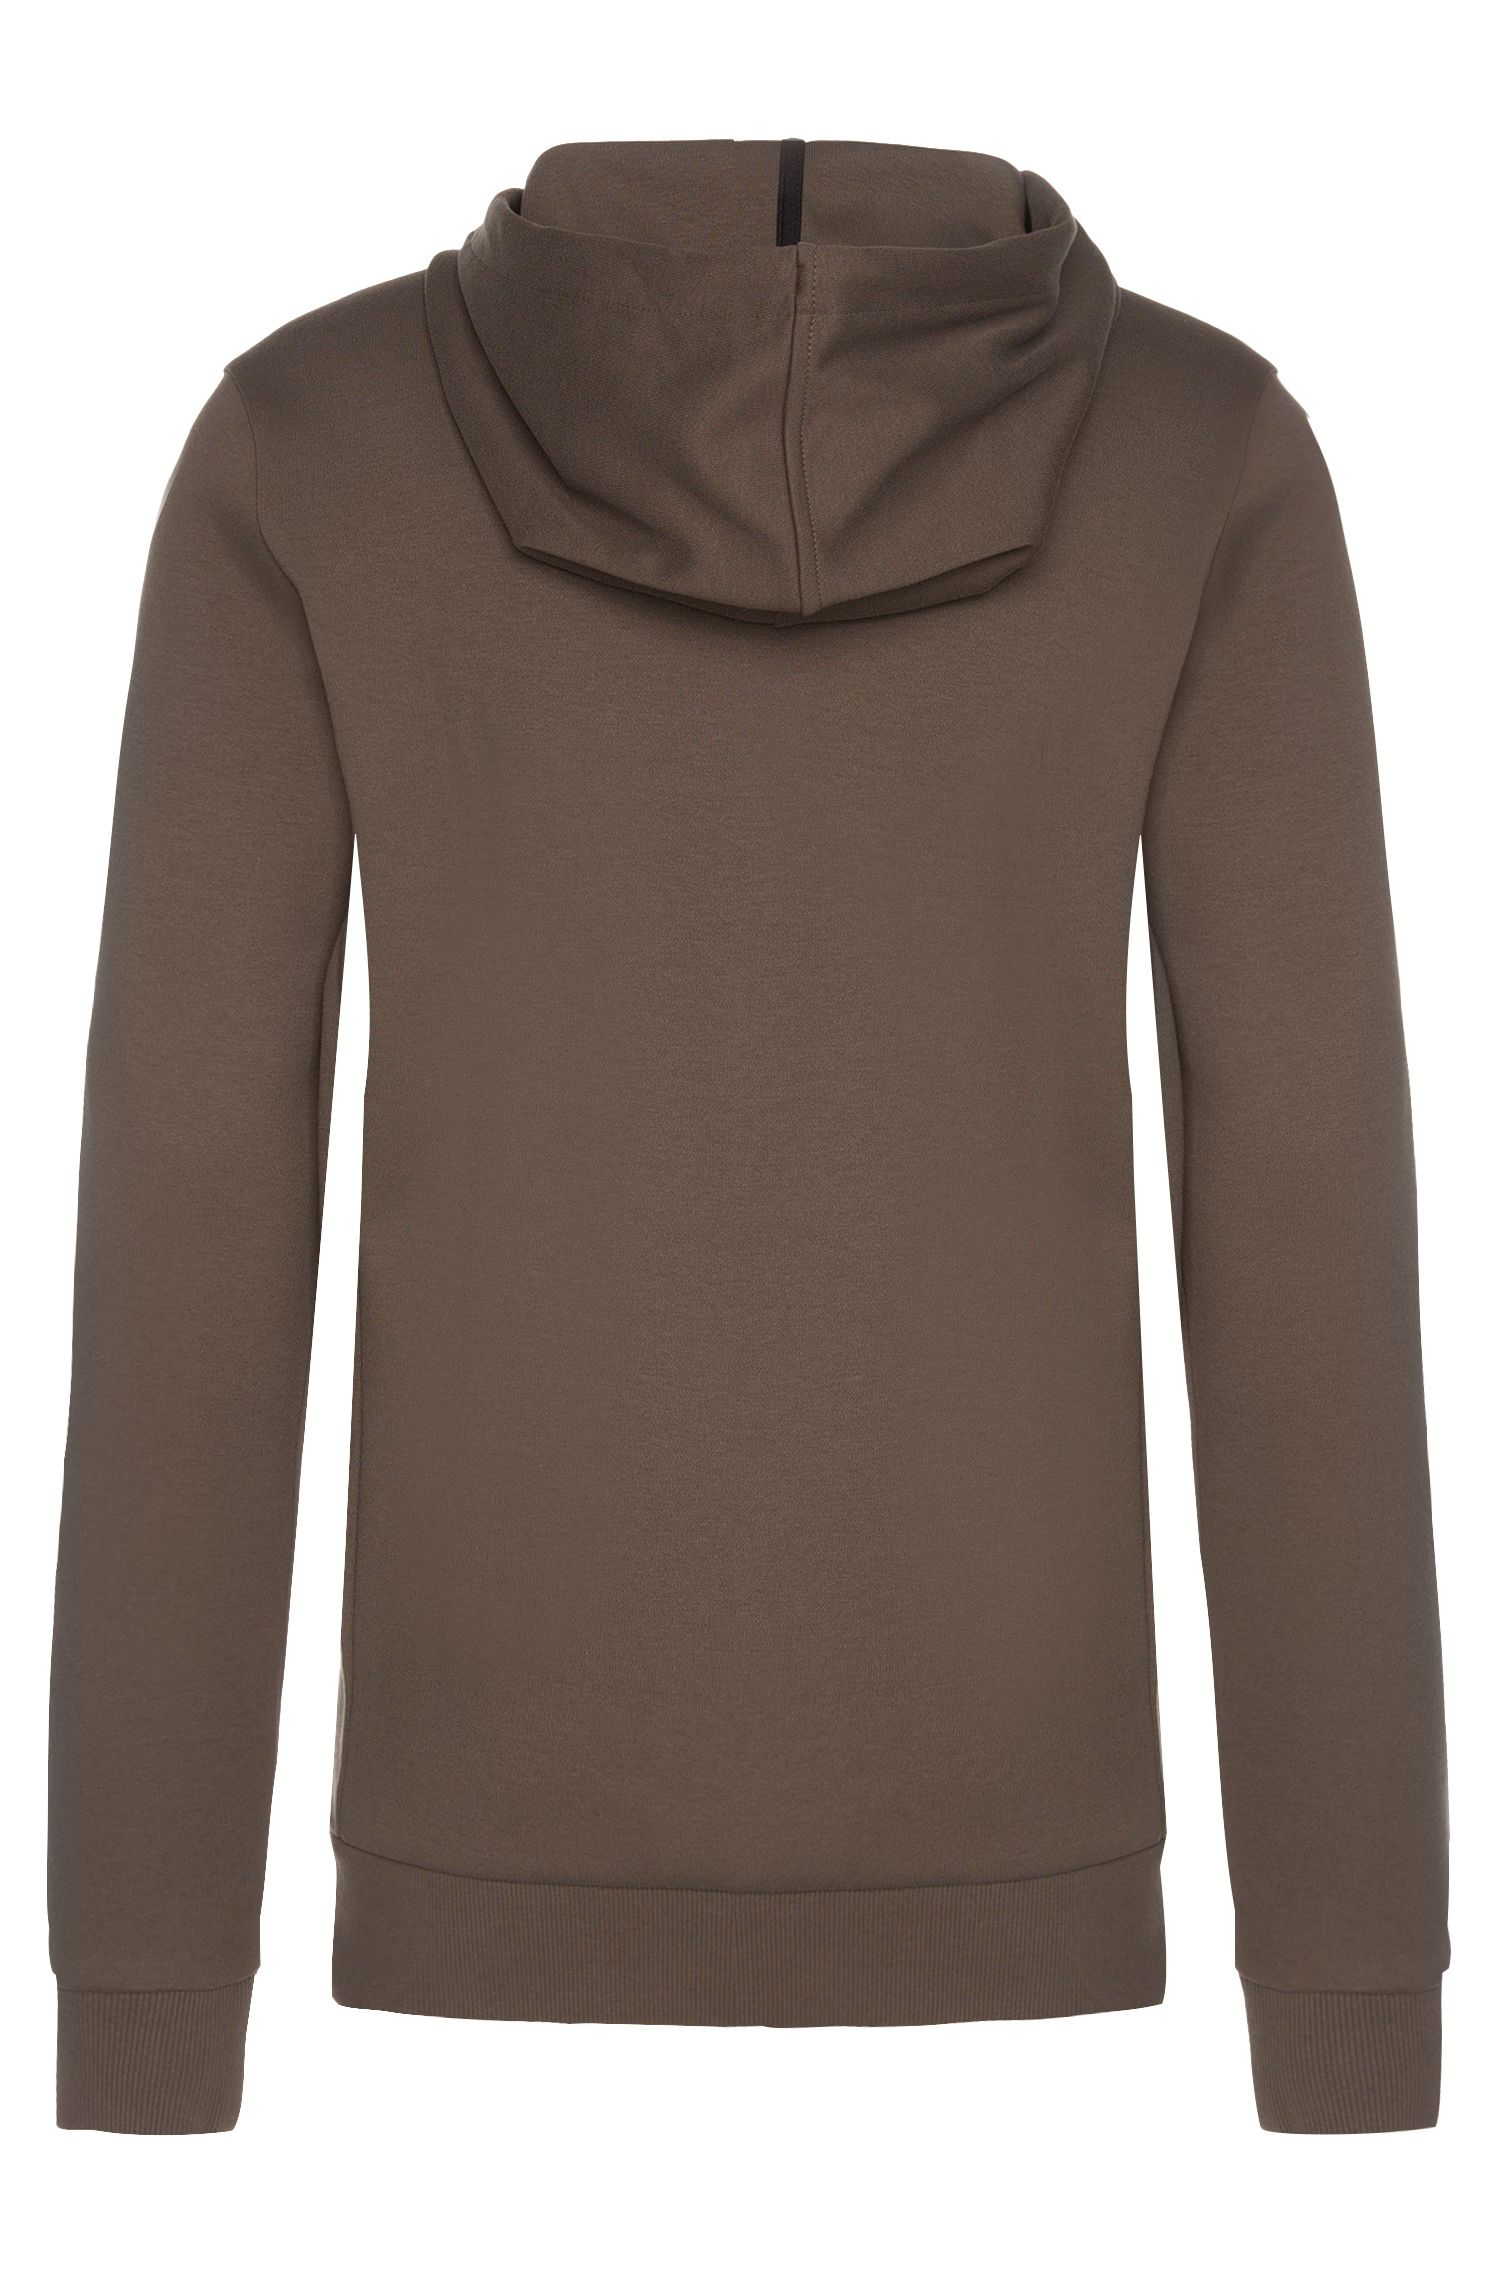 Regular-Fit Sweatshirt-Jacke mit Kapuze: 'Dalermo'